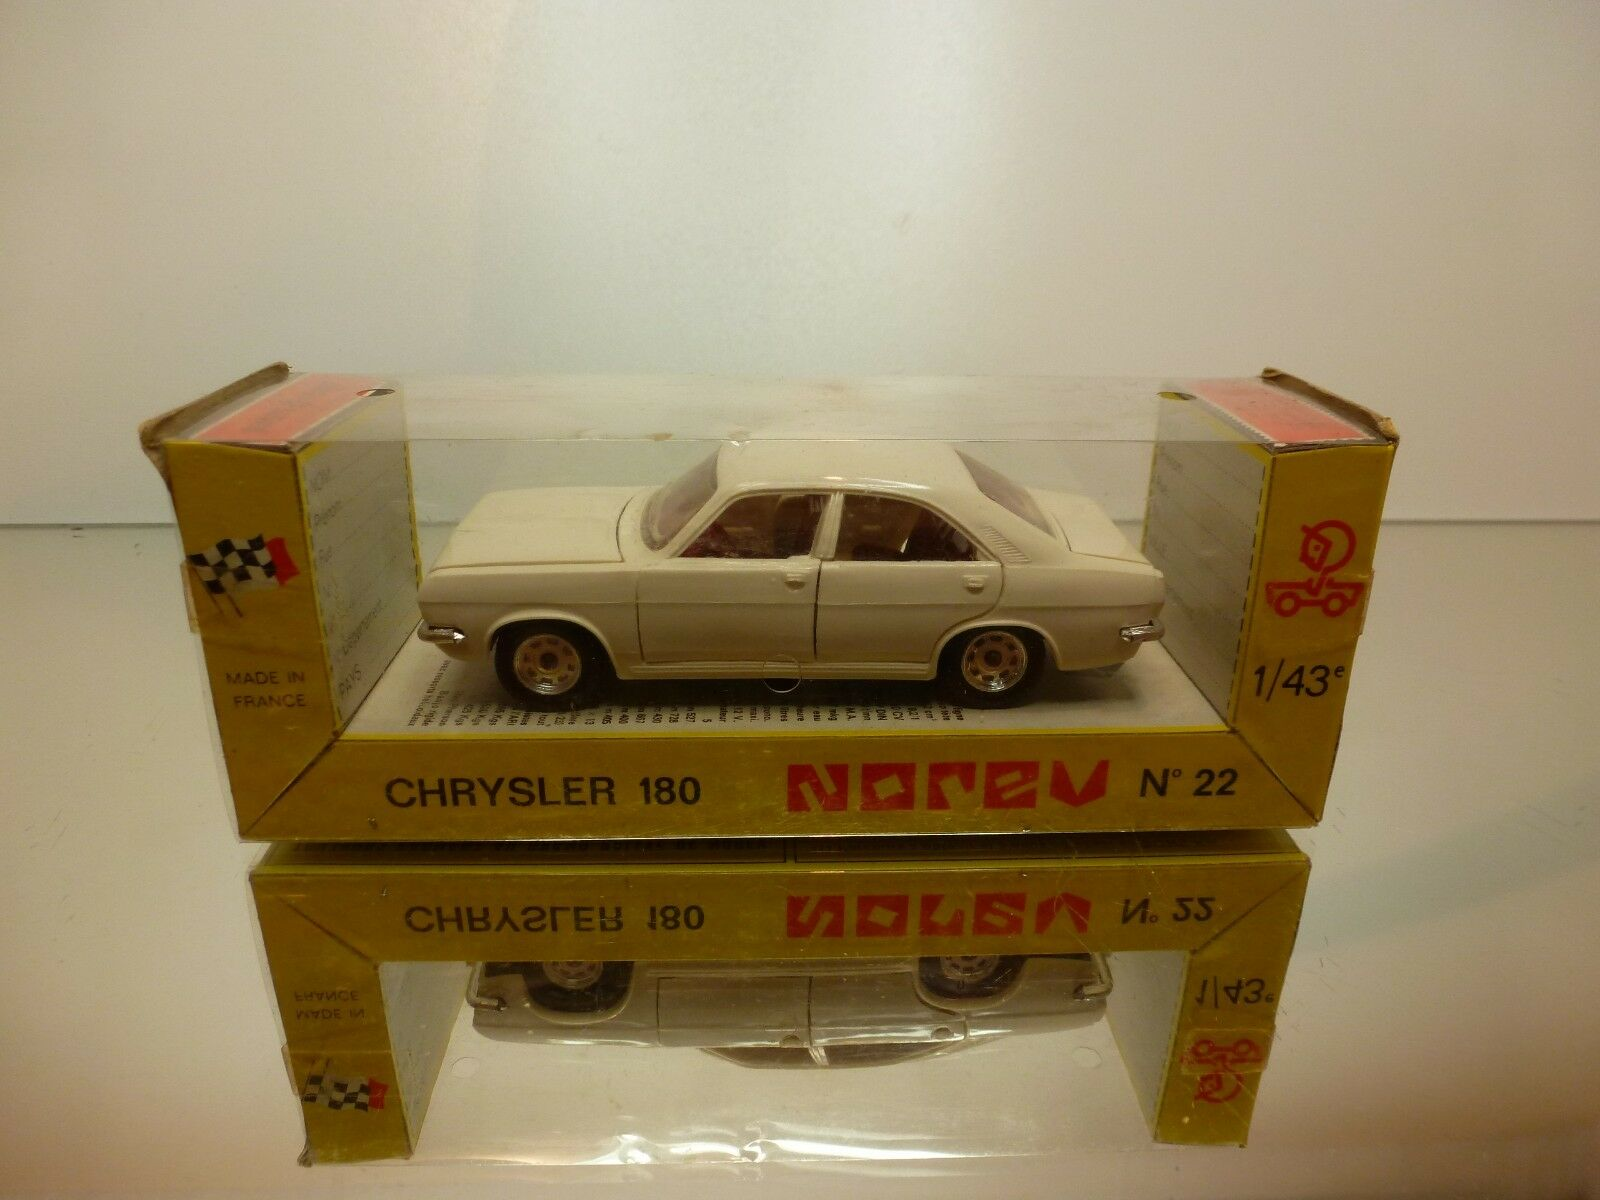 NOREV 22 CHRYSLER 180 - OFF-blanc 1 43 - GOOD CONDITION IN BOX